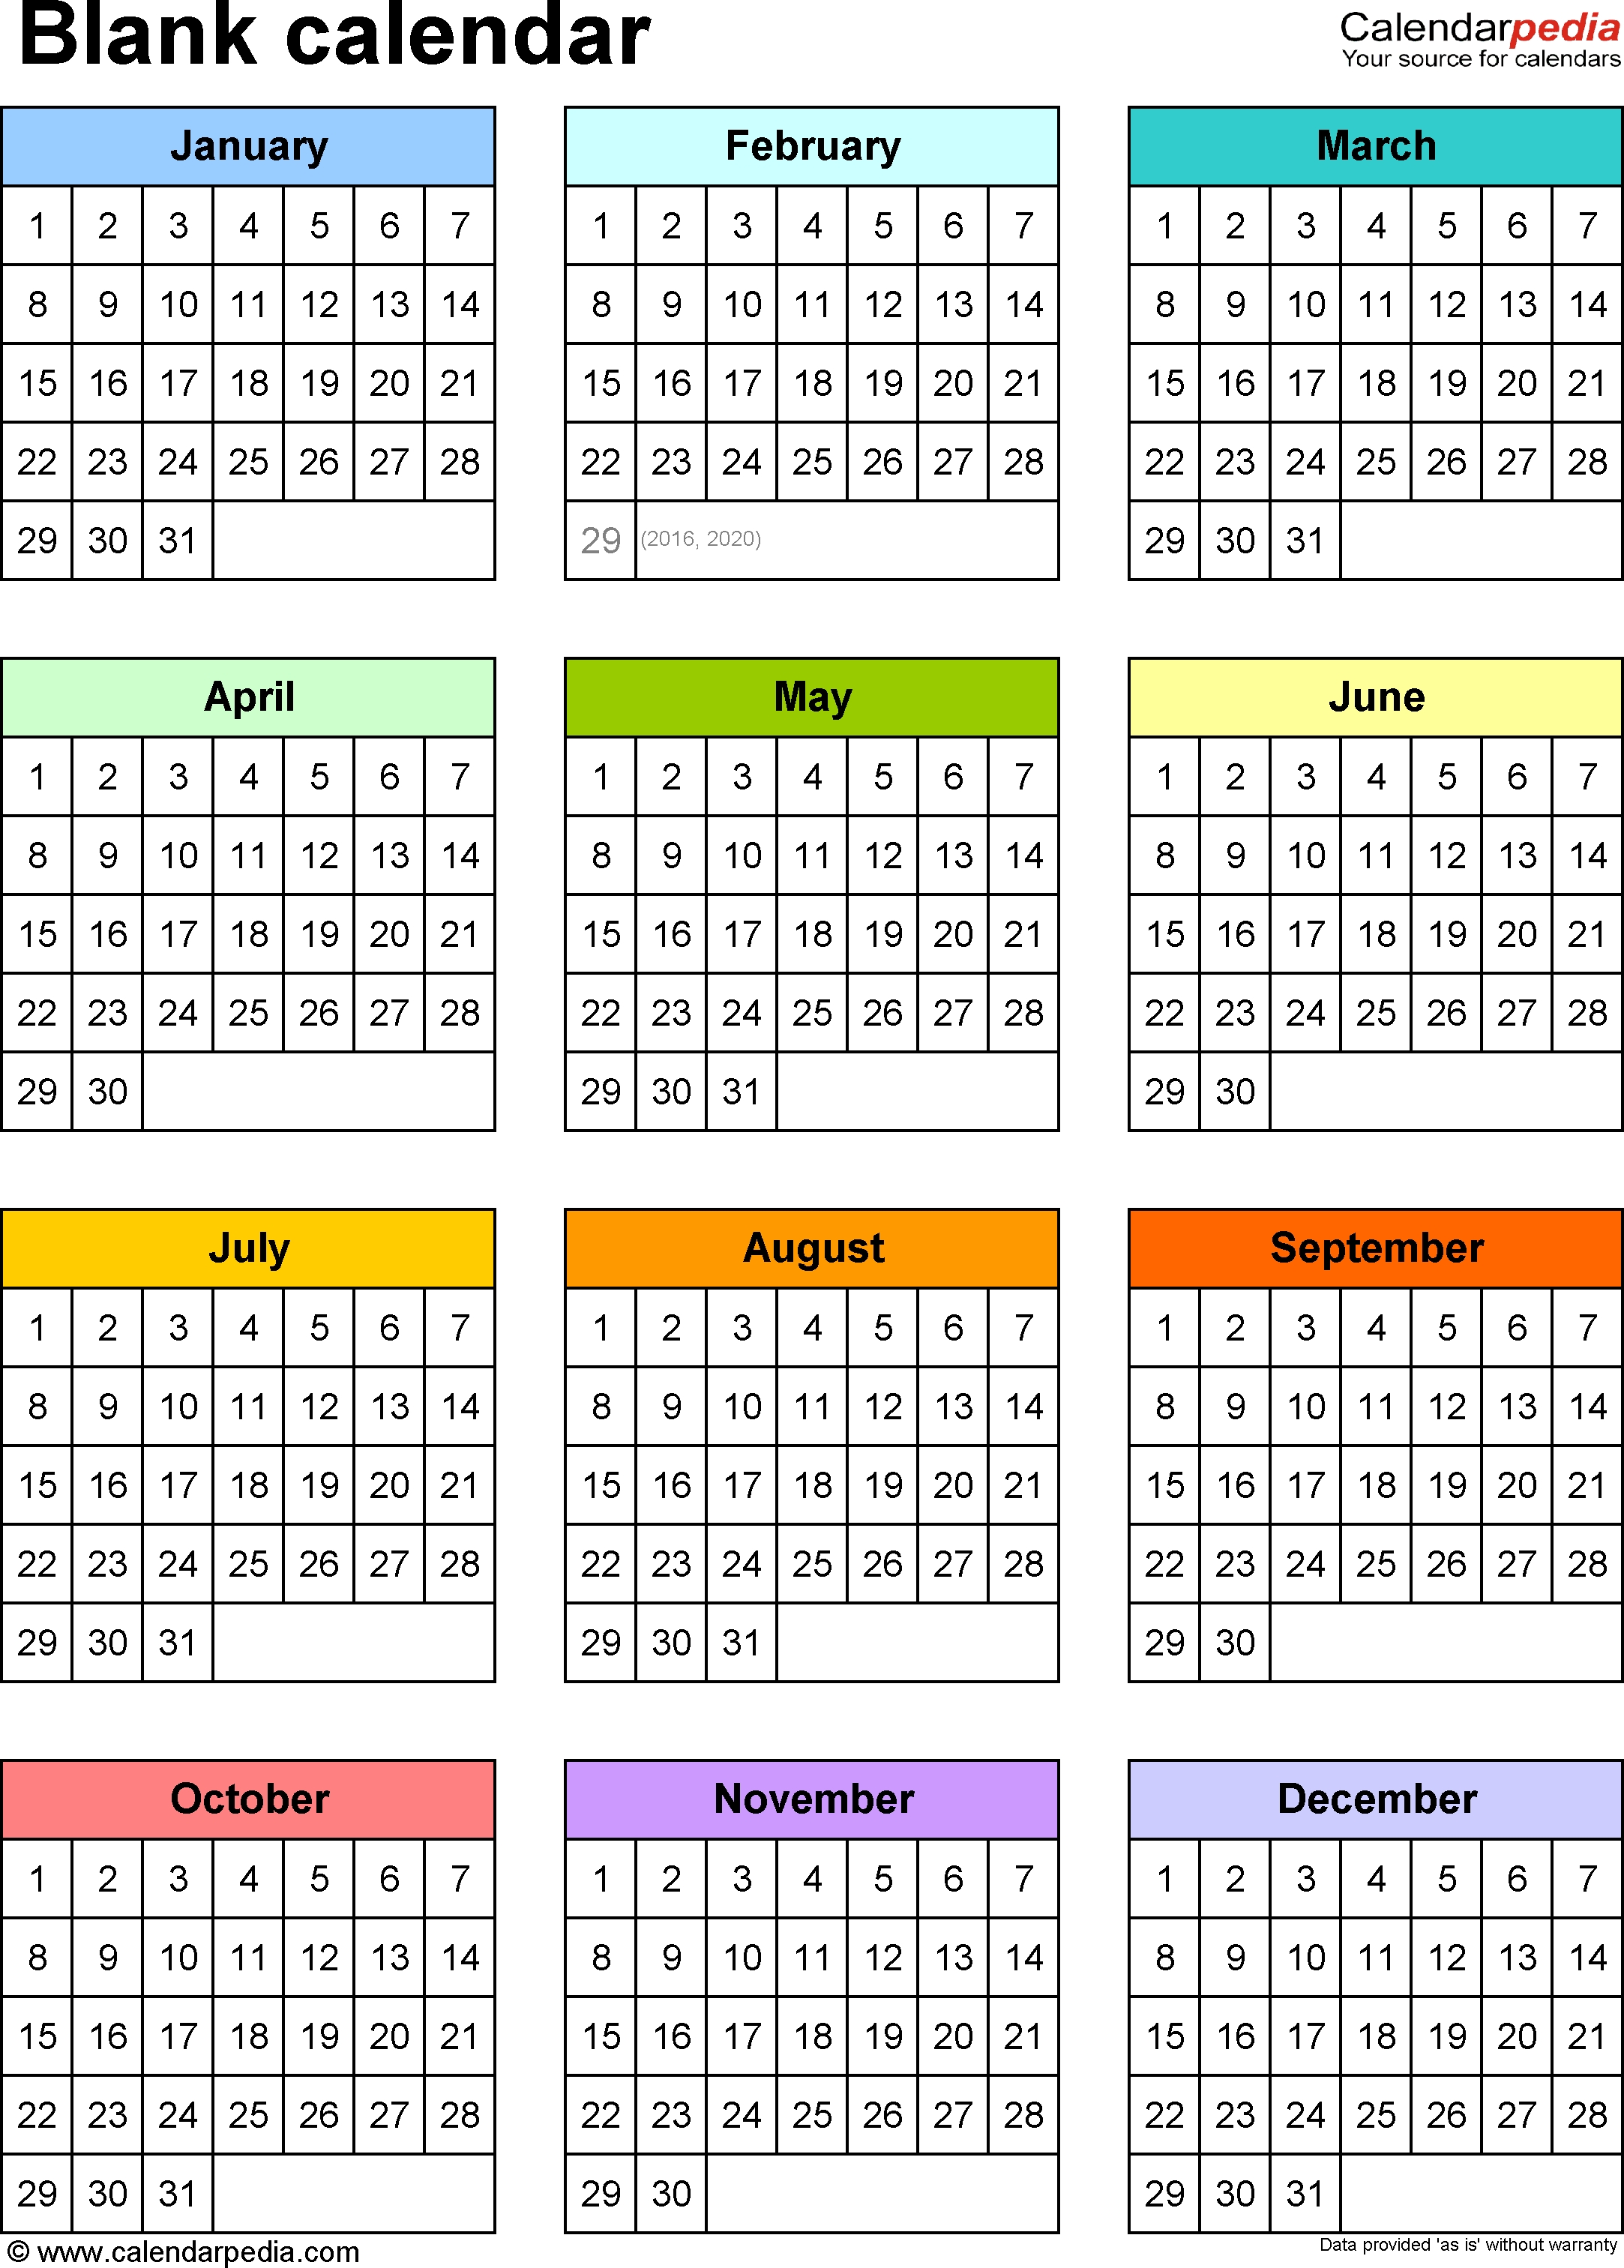 Blank Calendar - 9 Free Printable Microsoft Word Templates pertaining to Free Printable Calendar Year At A Glance Calendar